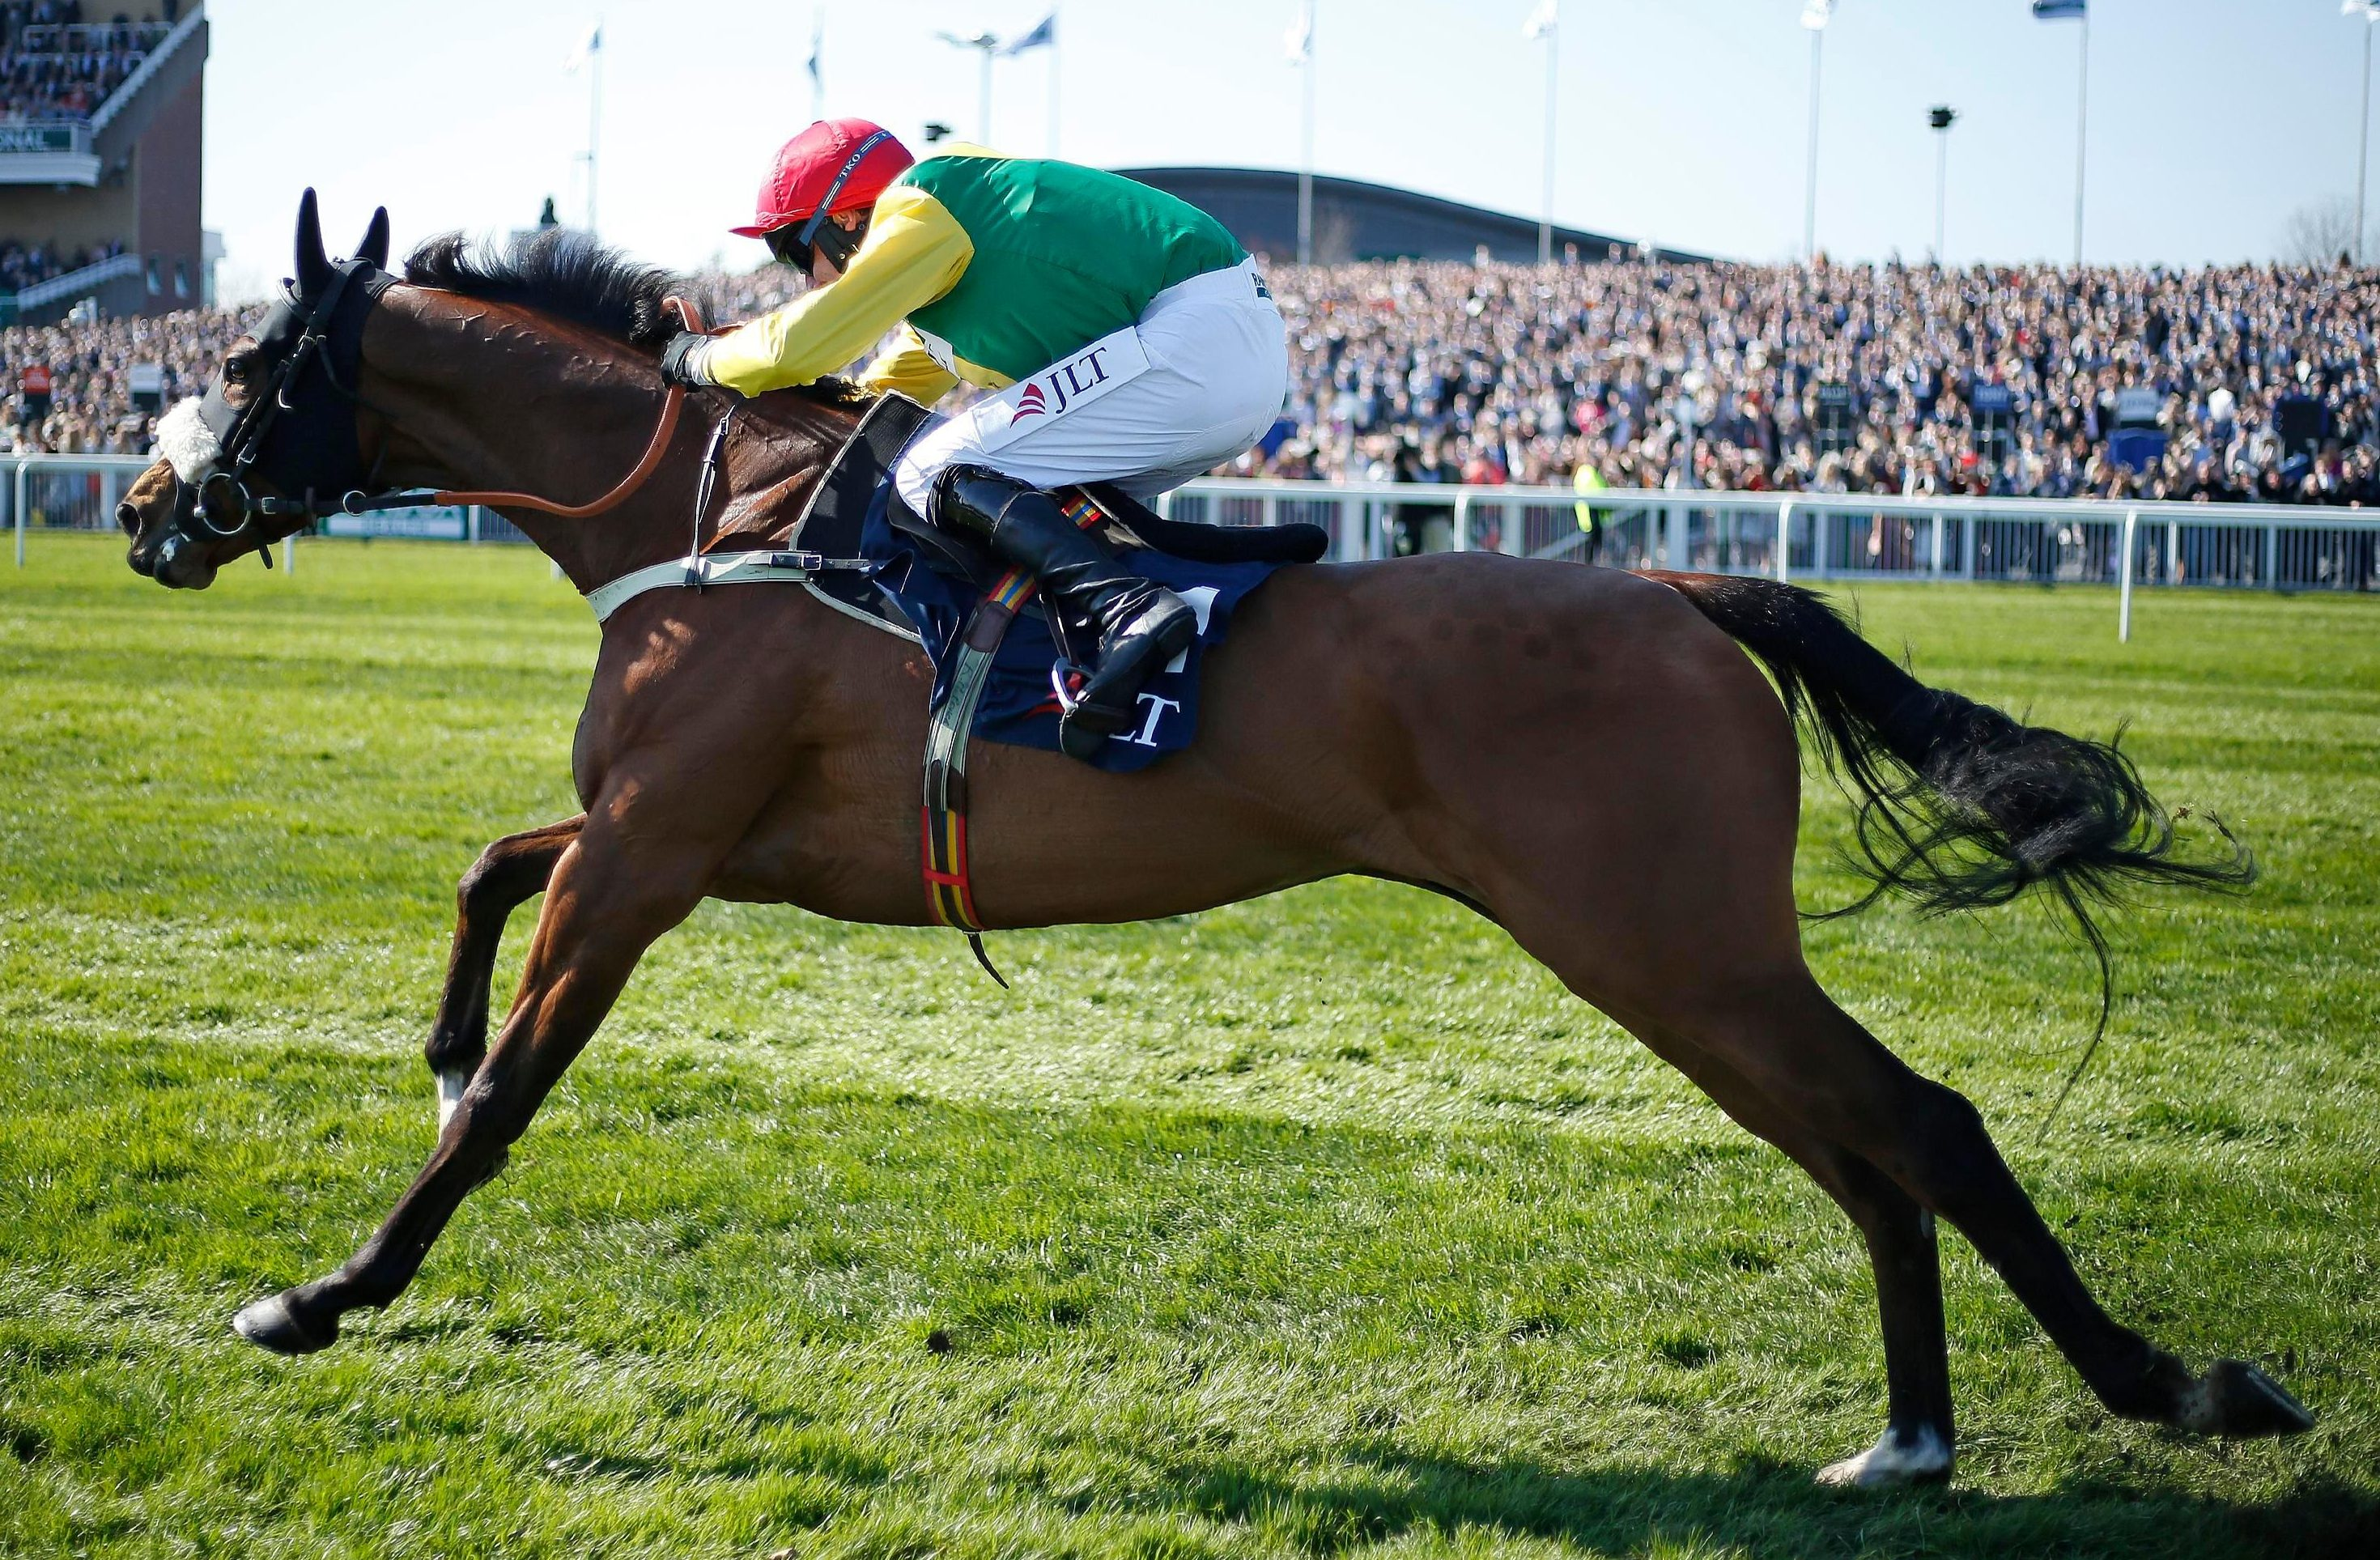 The second favourite for the Ryanair Chase has been ruled out for the season with a leg injury